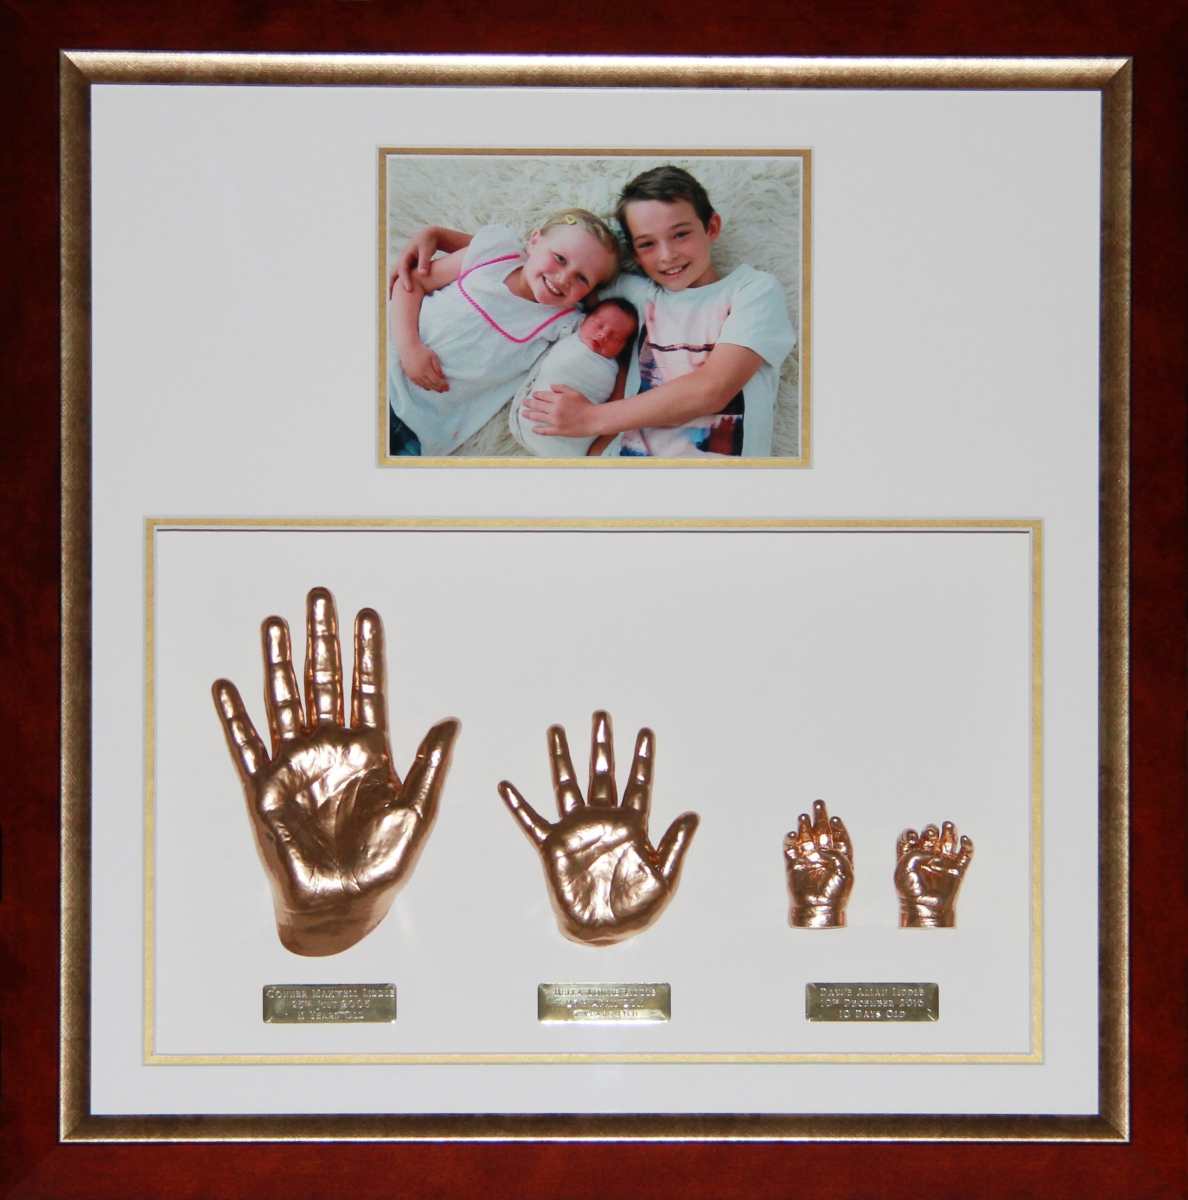 Sibling Photo Frames - Page 7 - Frame Design & Reviews ✓